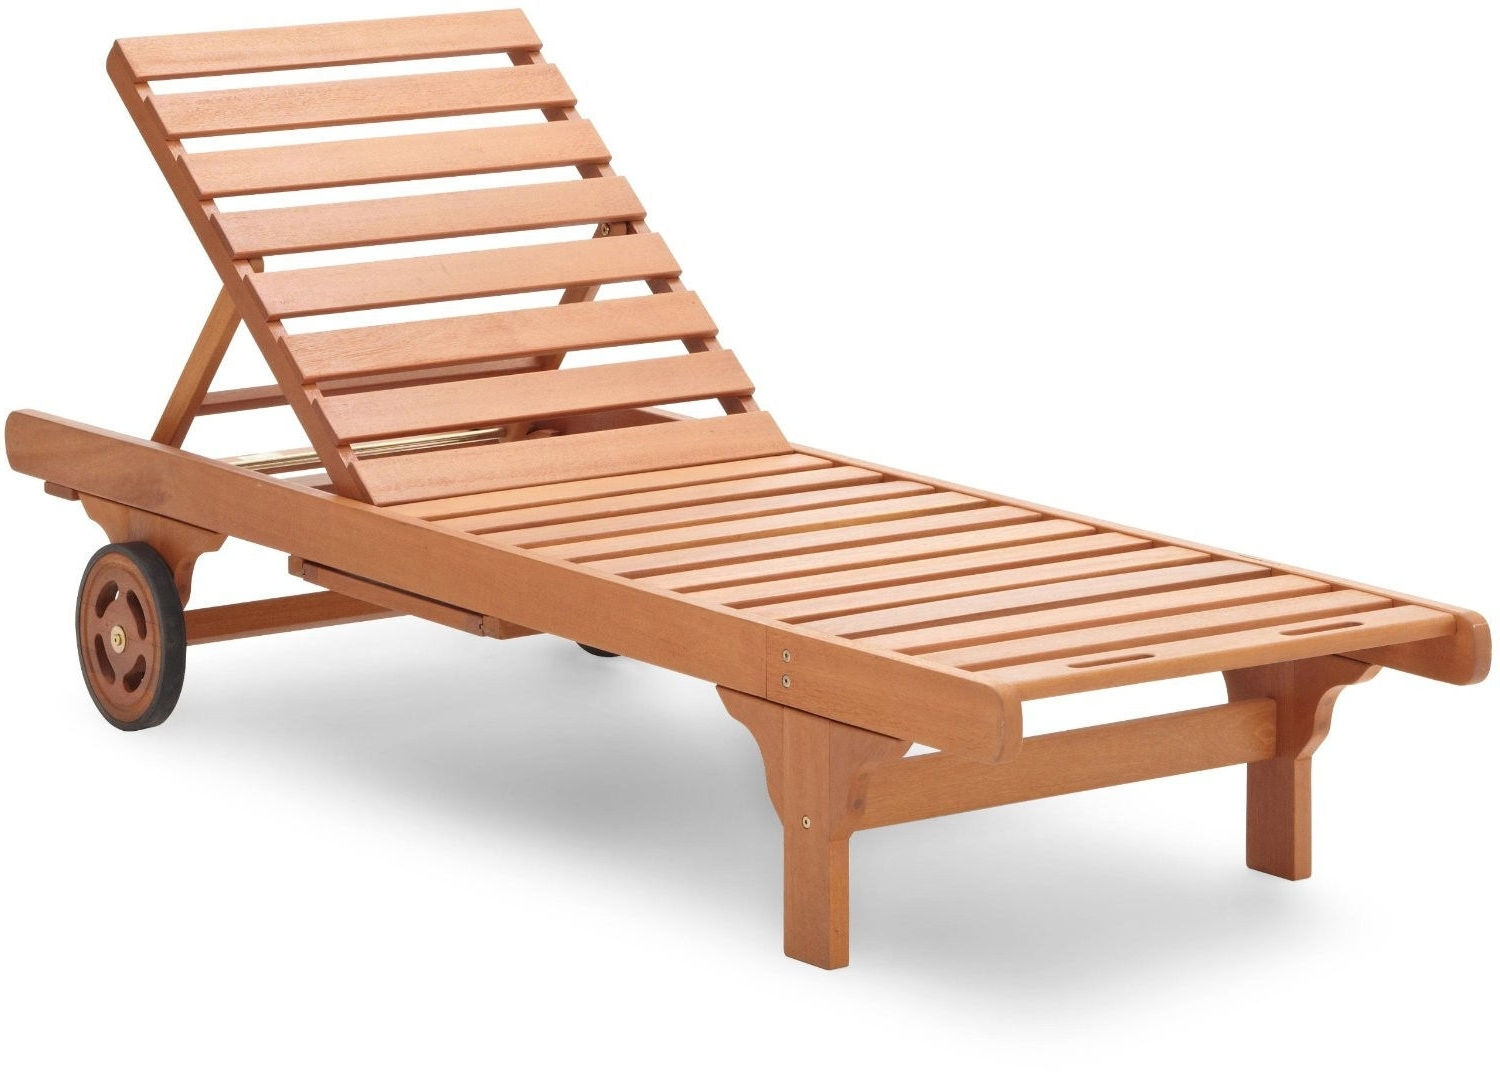 Wooden Chaise Lounge – Patio Chaise Lounge Ikea, Outdoor Chaise Intended For Recent Wood Outdoor Chaise Lounges (View 13 of 15)